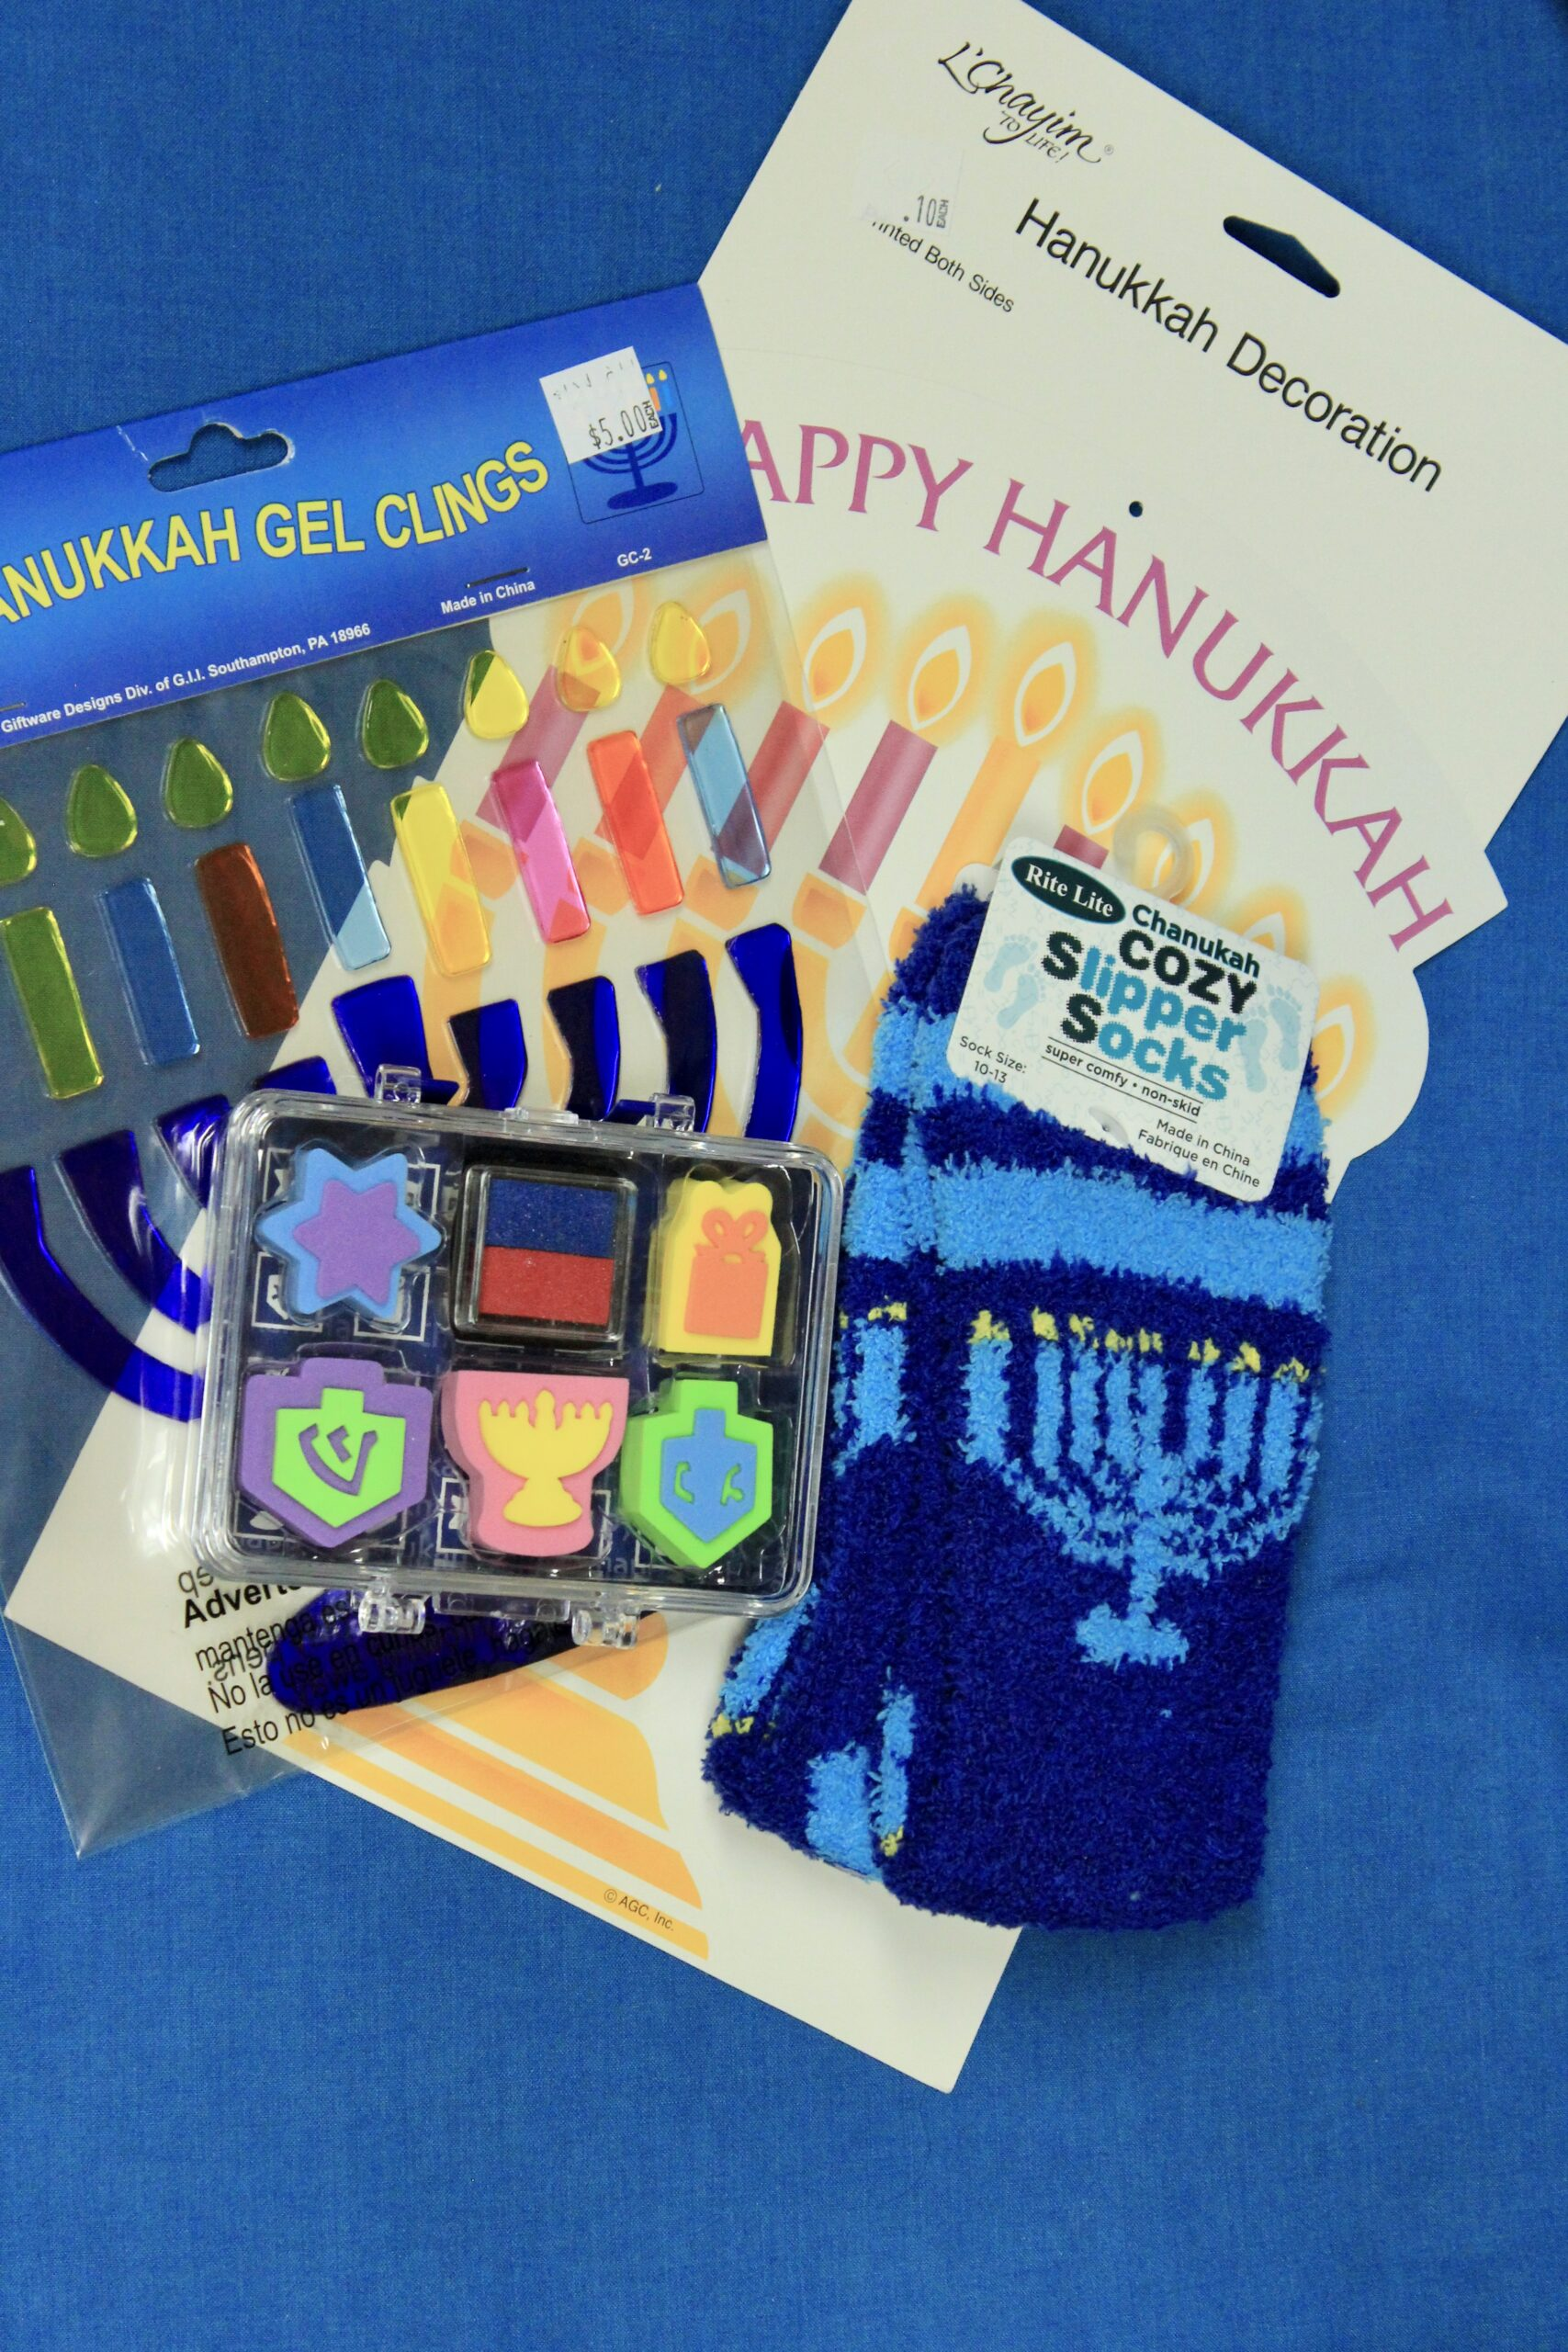 Fuzzy Socks, Stamp Set, Menorah Gel Cling and Paper Decor $12 (5 available)